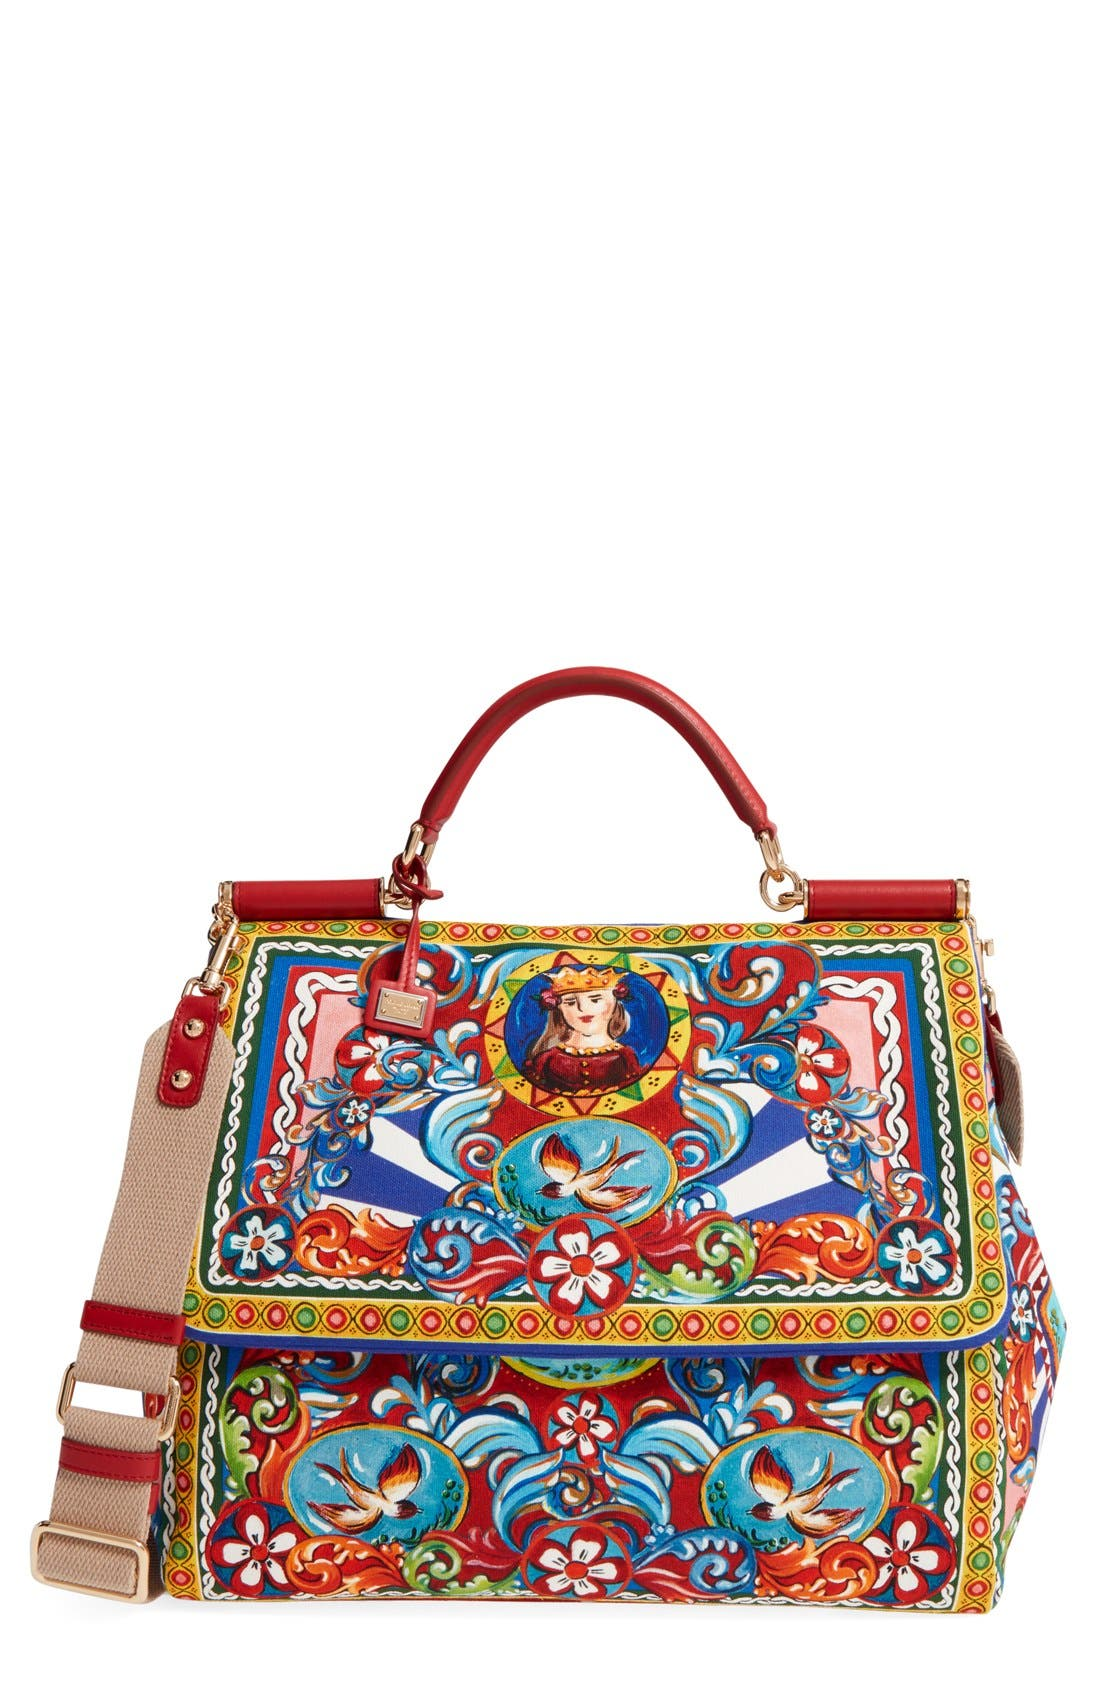 Alternate Image 1 Selected - Dolce&Gabbana 'Large Miss Sicily' Carretto Print Top Handle Canvas Satchel